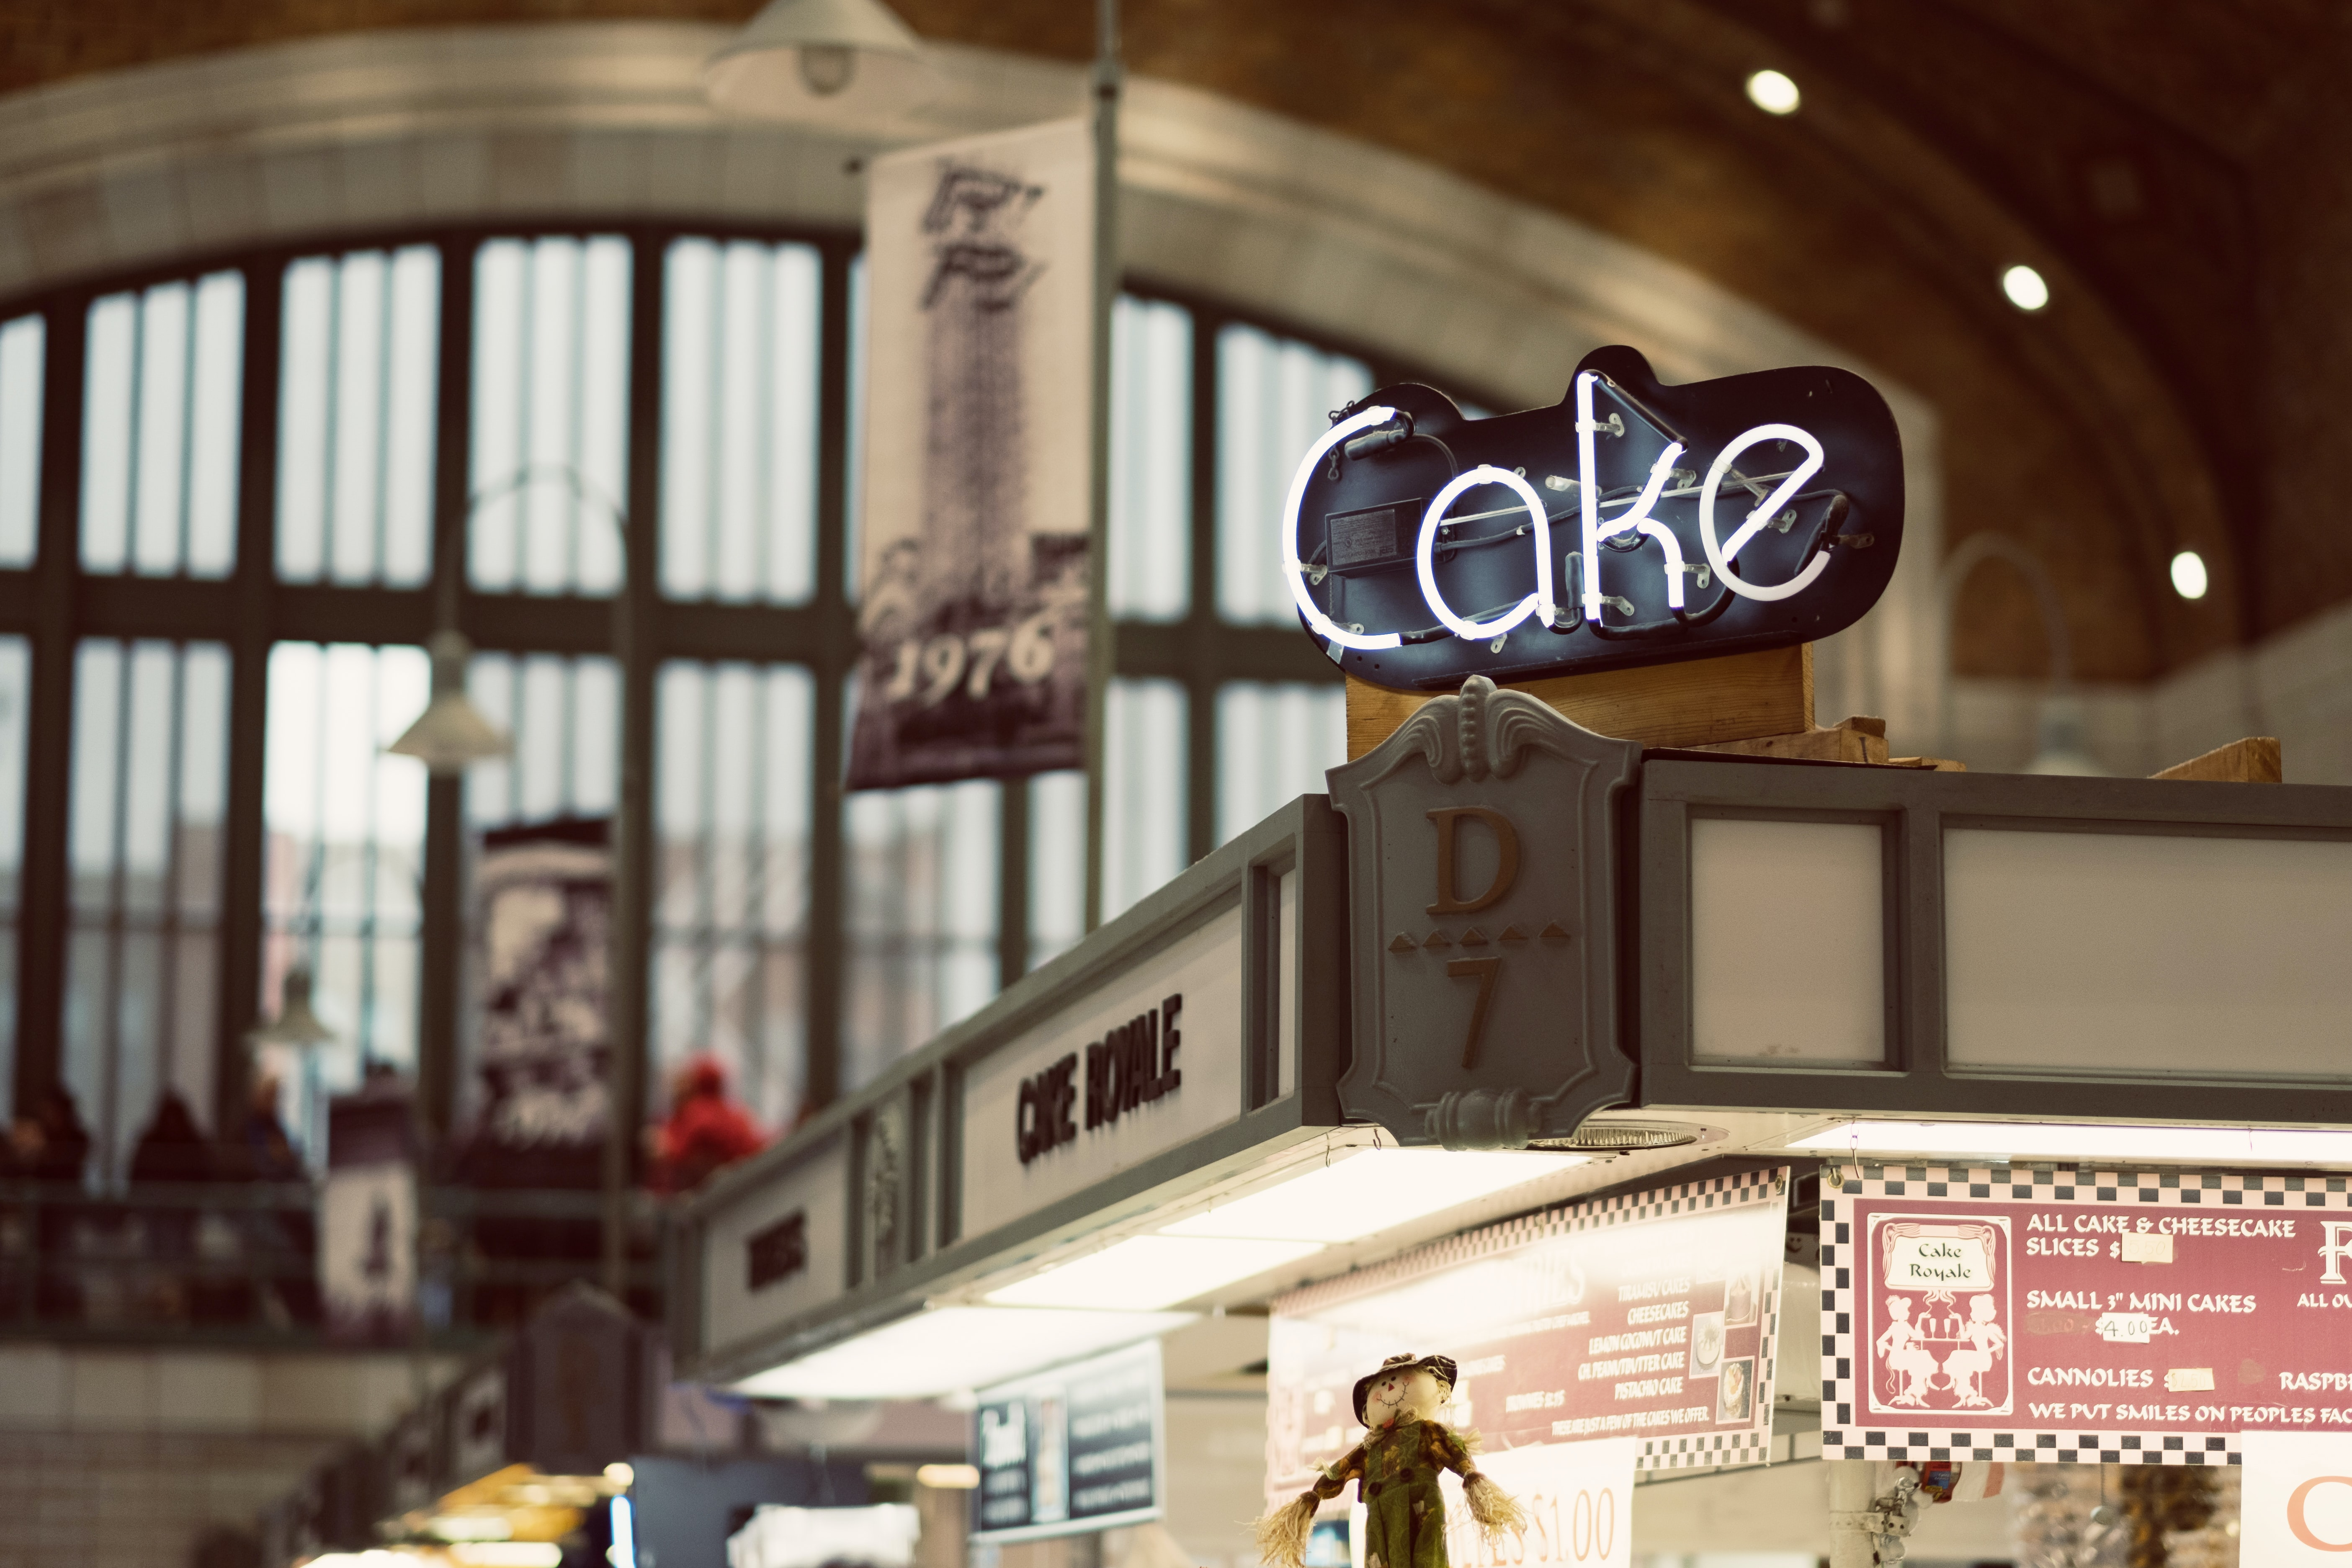 """A """"cake"""" neon over a store in a covered market"""